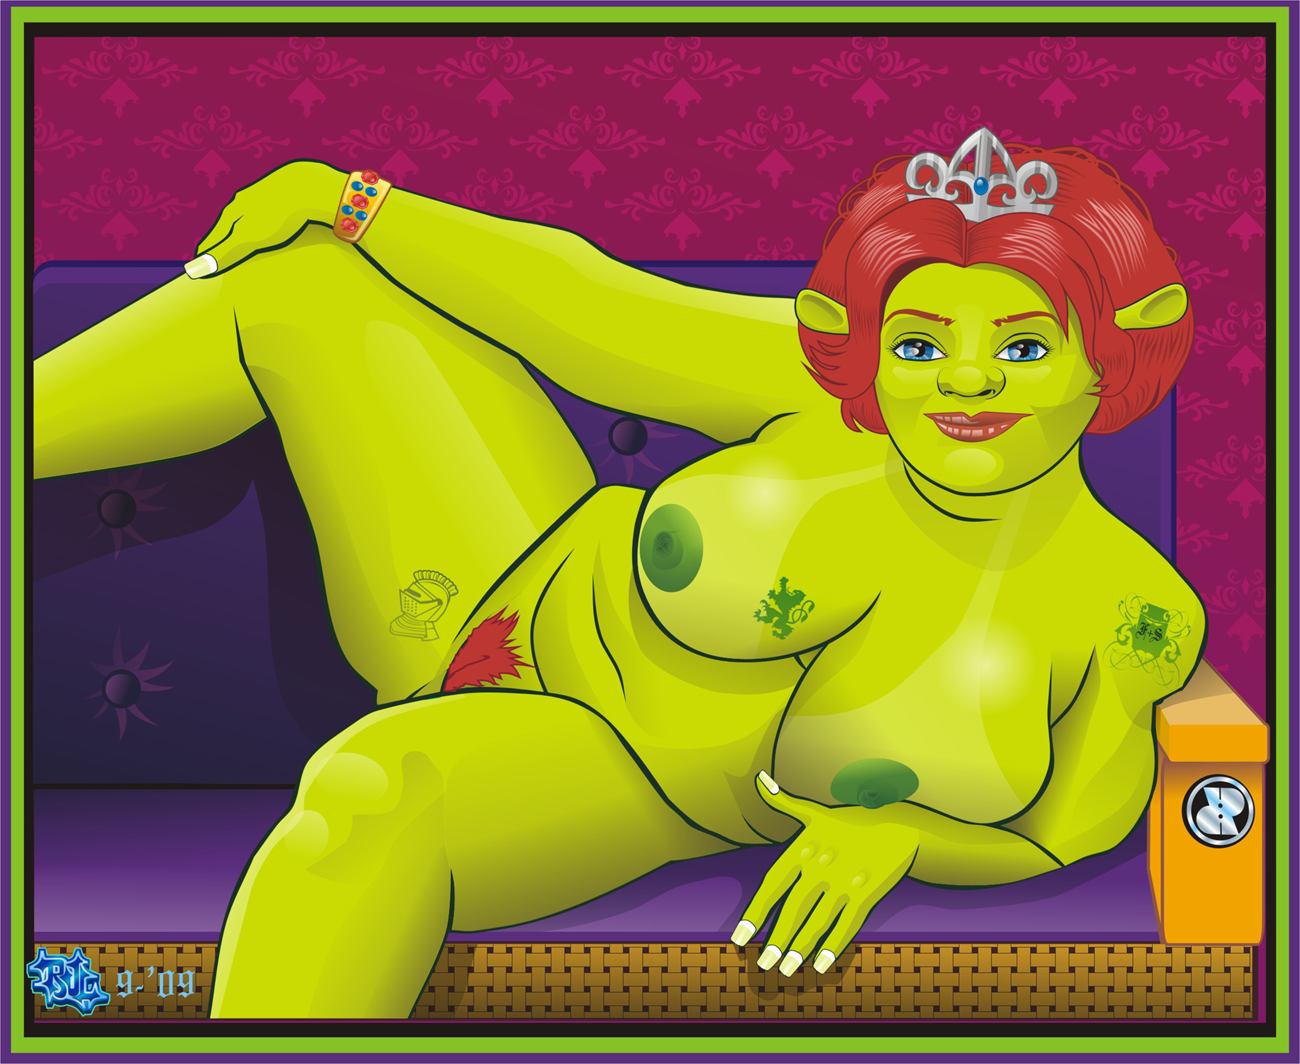 Shrek and fiona nude photo sexy images